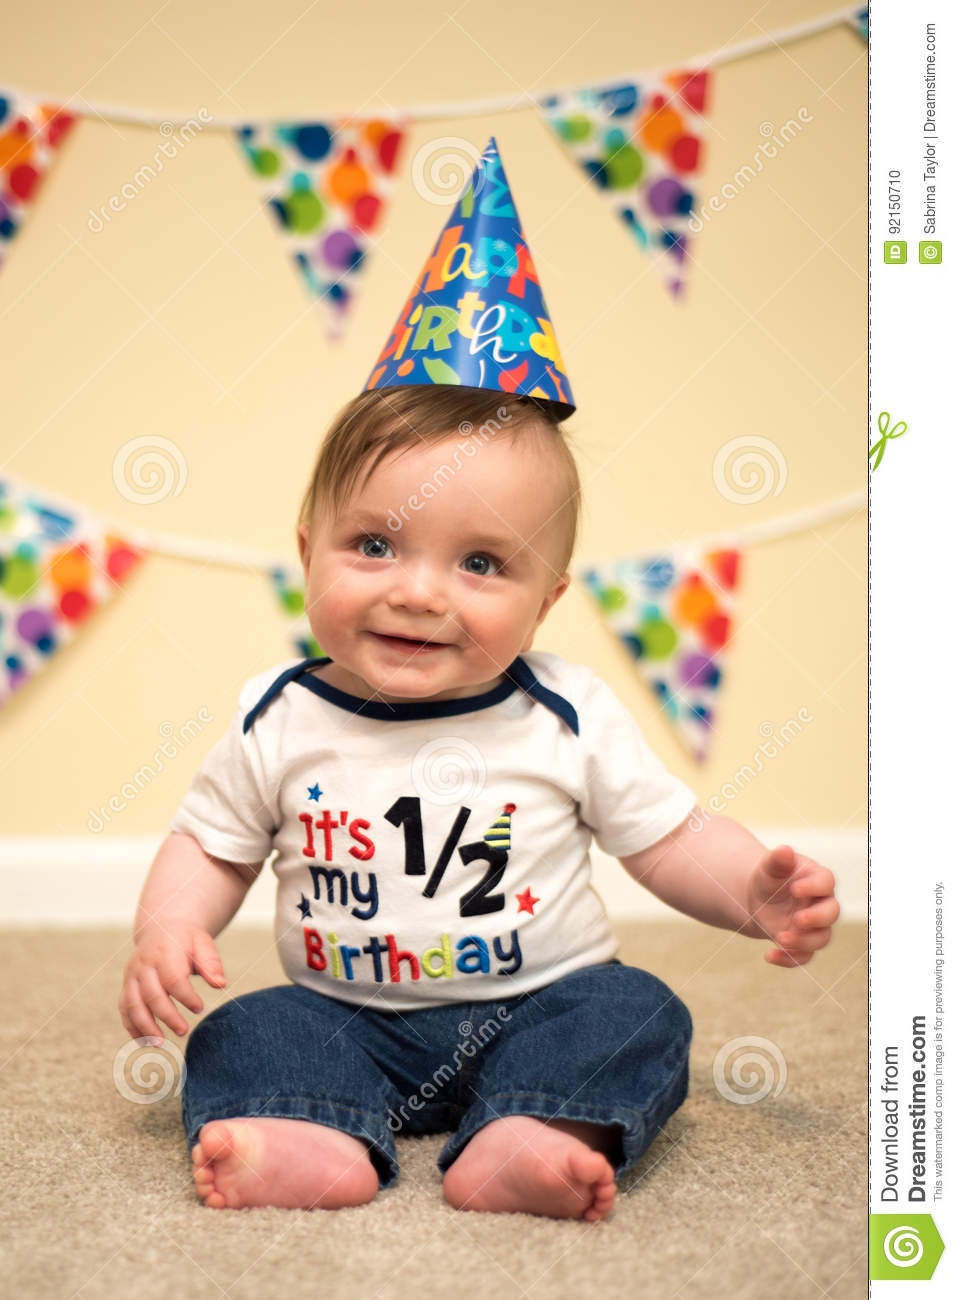 Adorable 6 Month Old Blue Eyed Baby Boy Smiling While Looking At The Camera He Is Sitting Beige Carpet With Birthday Streamers And A Yellow Wall In